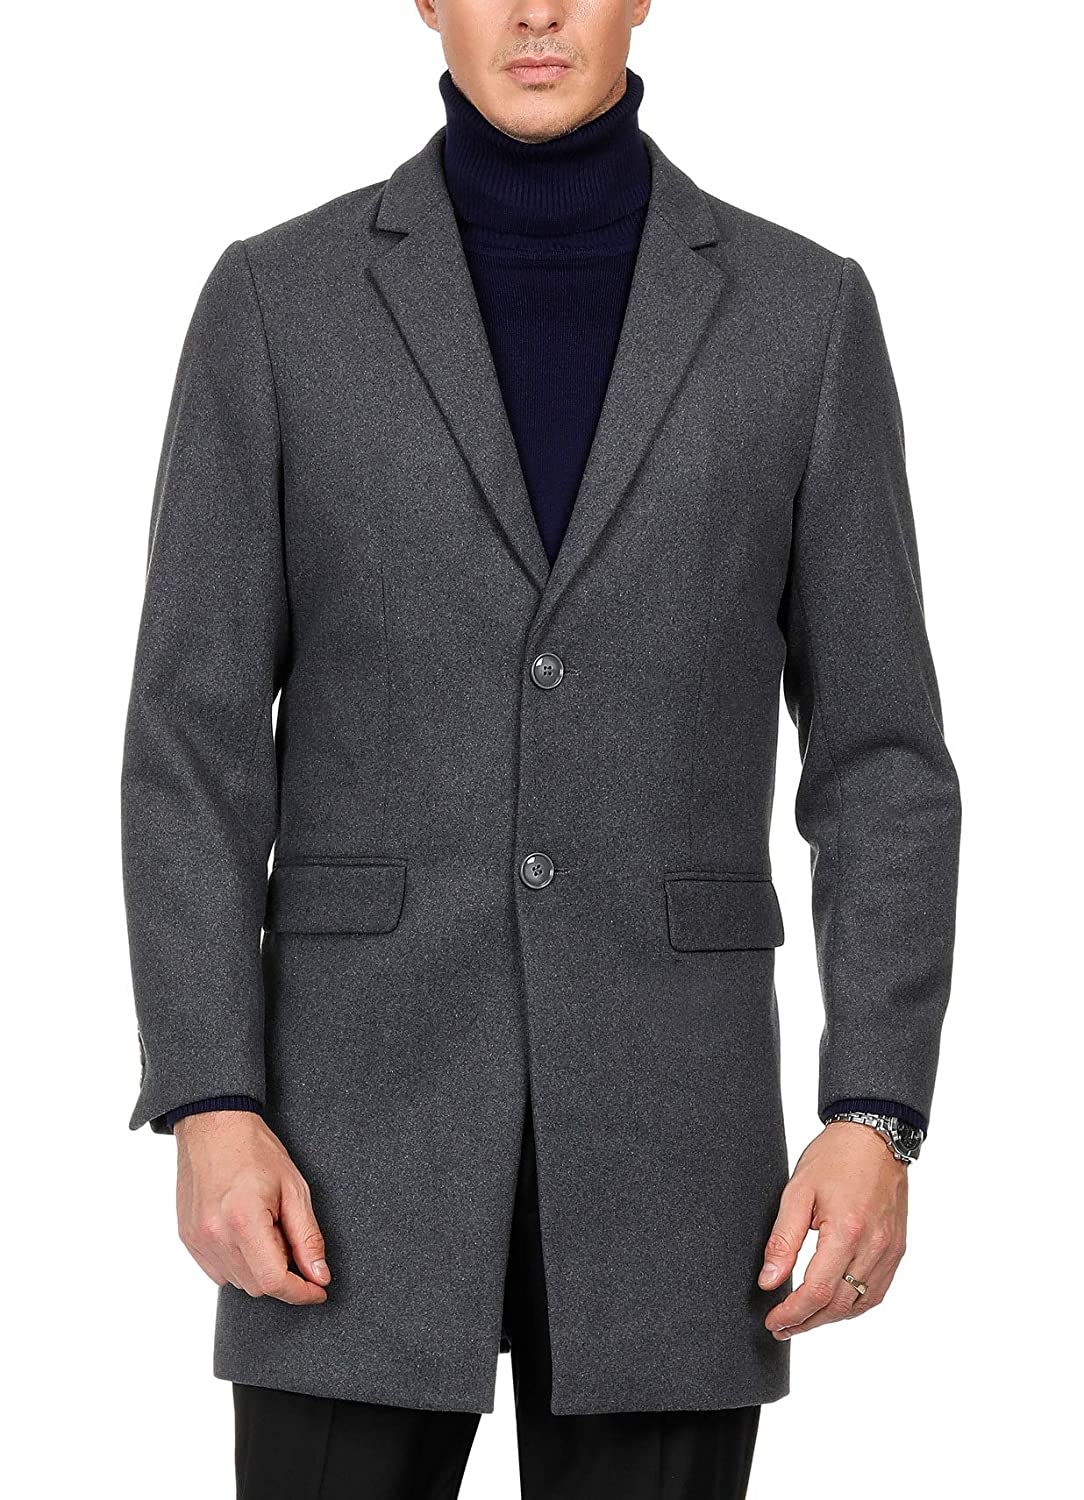 PAUL JONES Mens Winter Single Breasted Notched Collar Wool Blend Overcoat Jacket